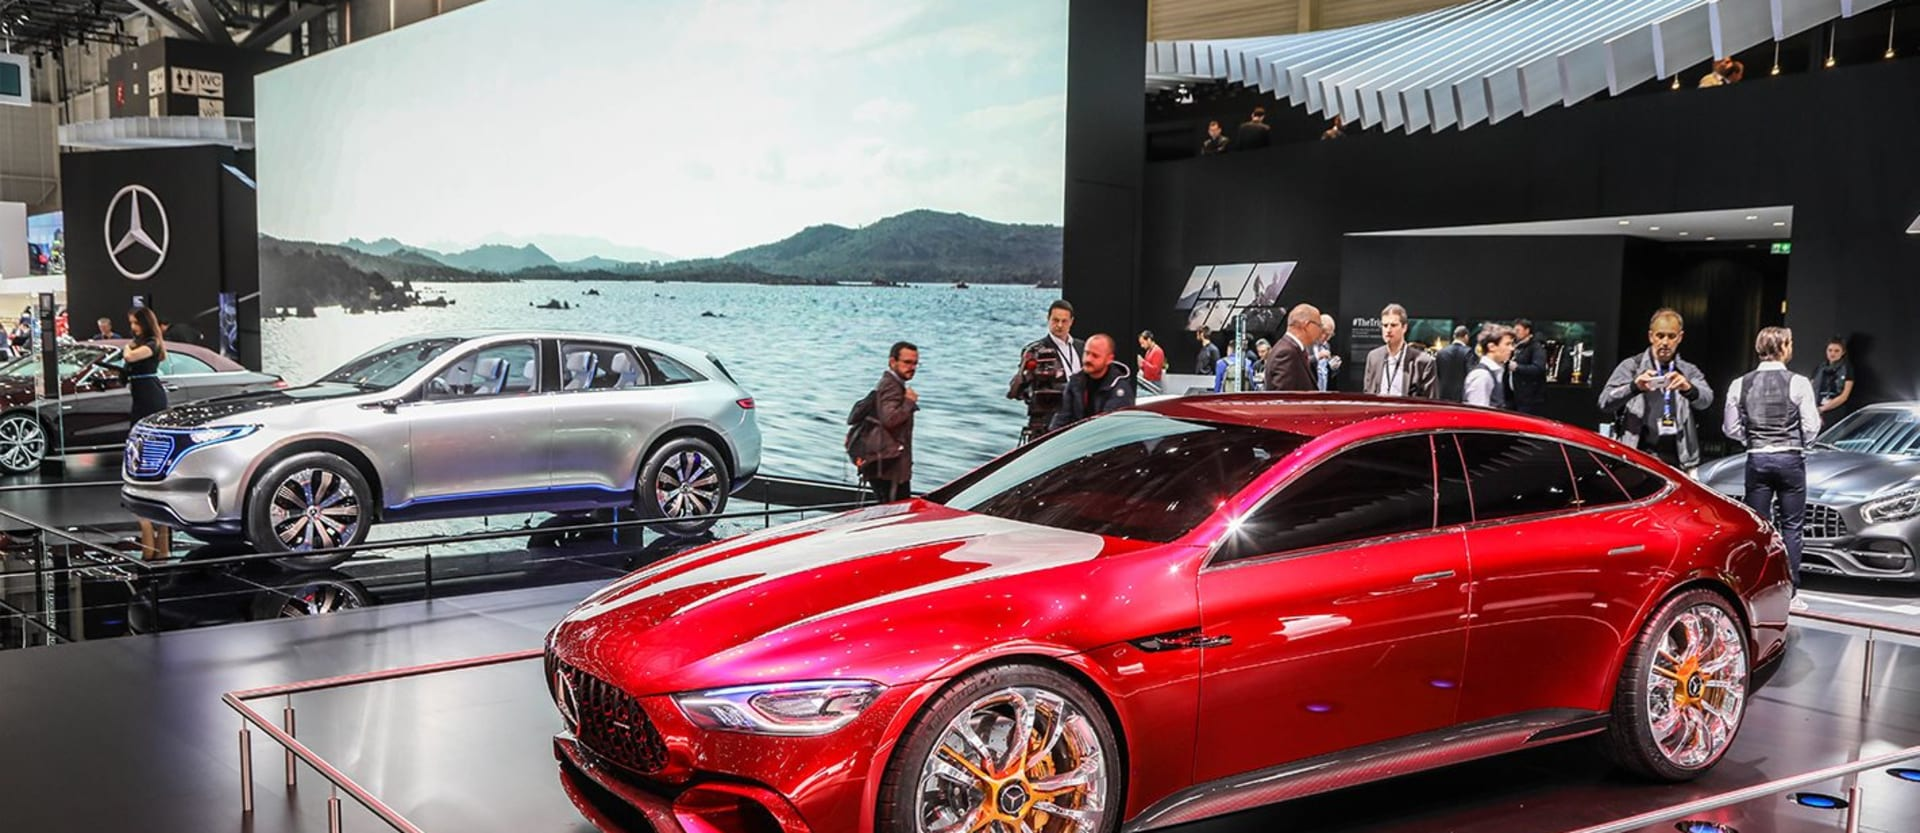 2018 Geneva Motor Show What to expect